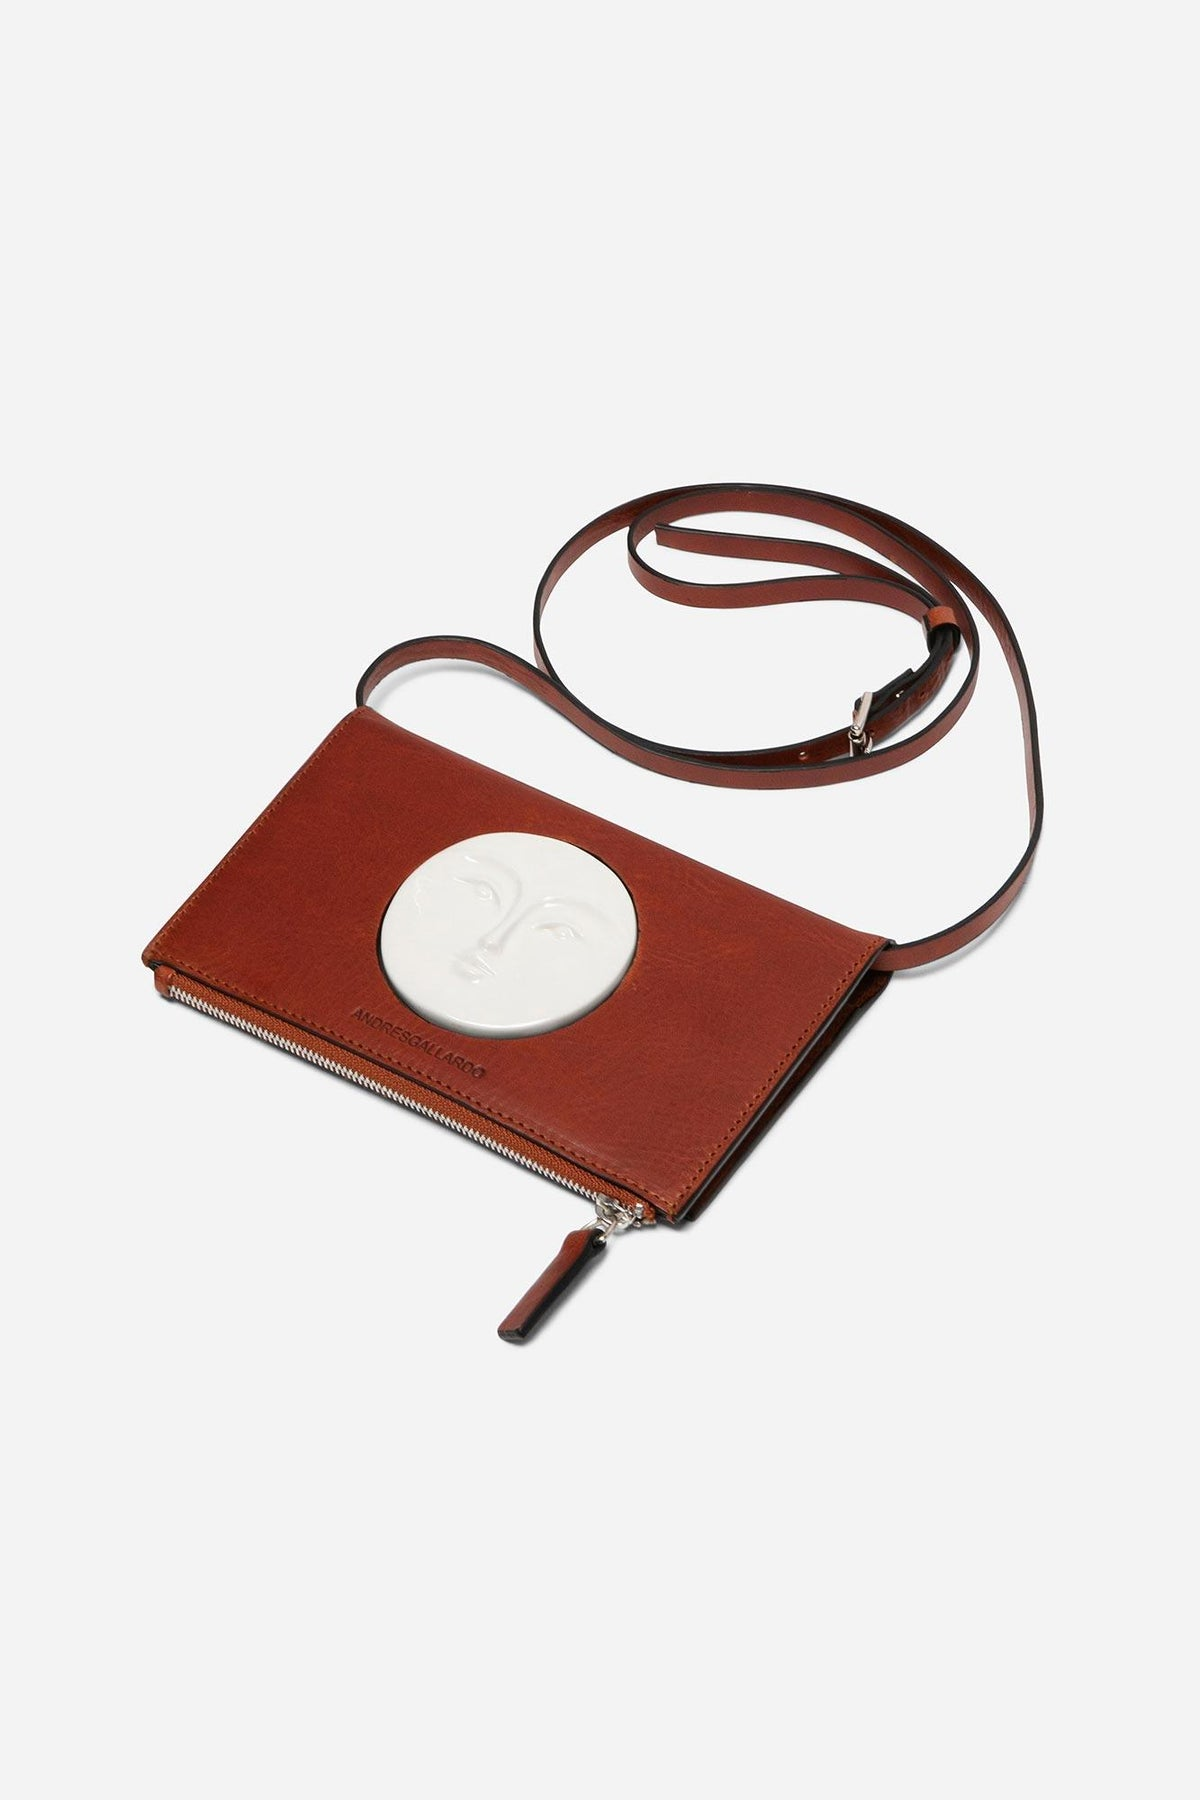 Moon Wallet Bag - Brandy